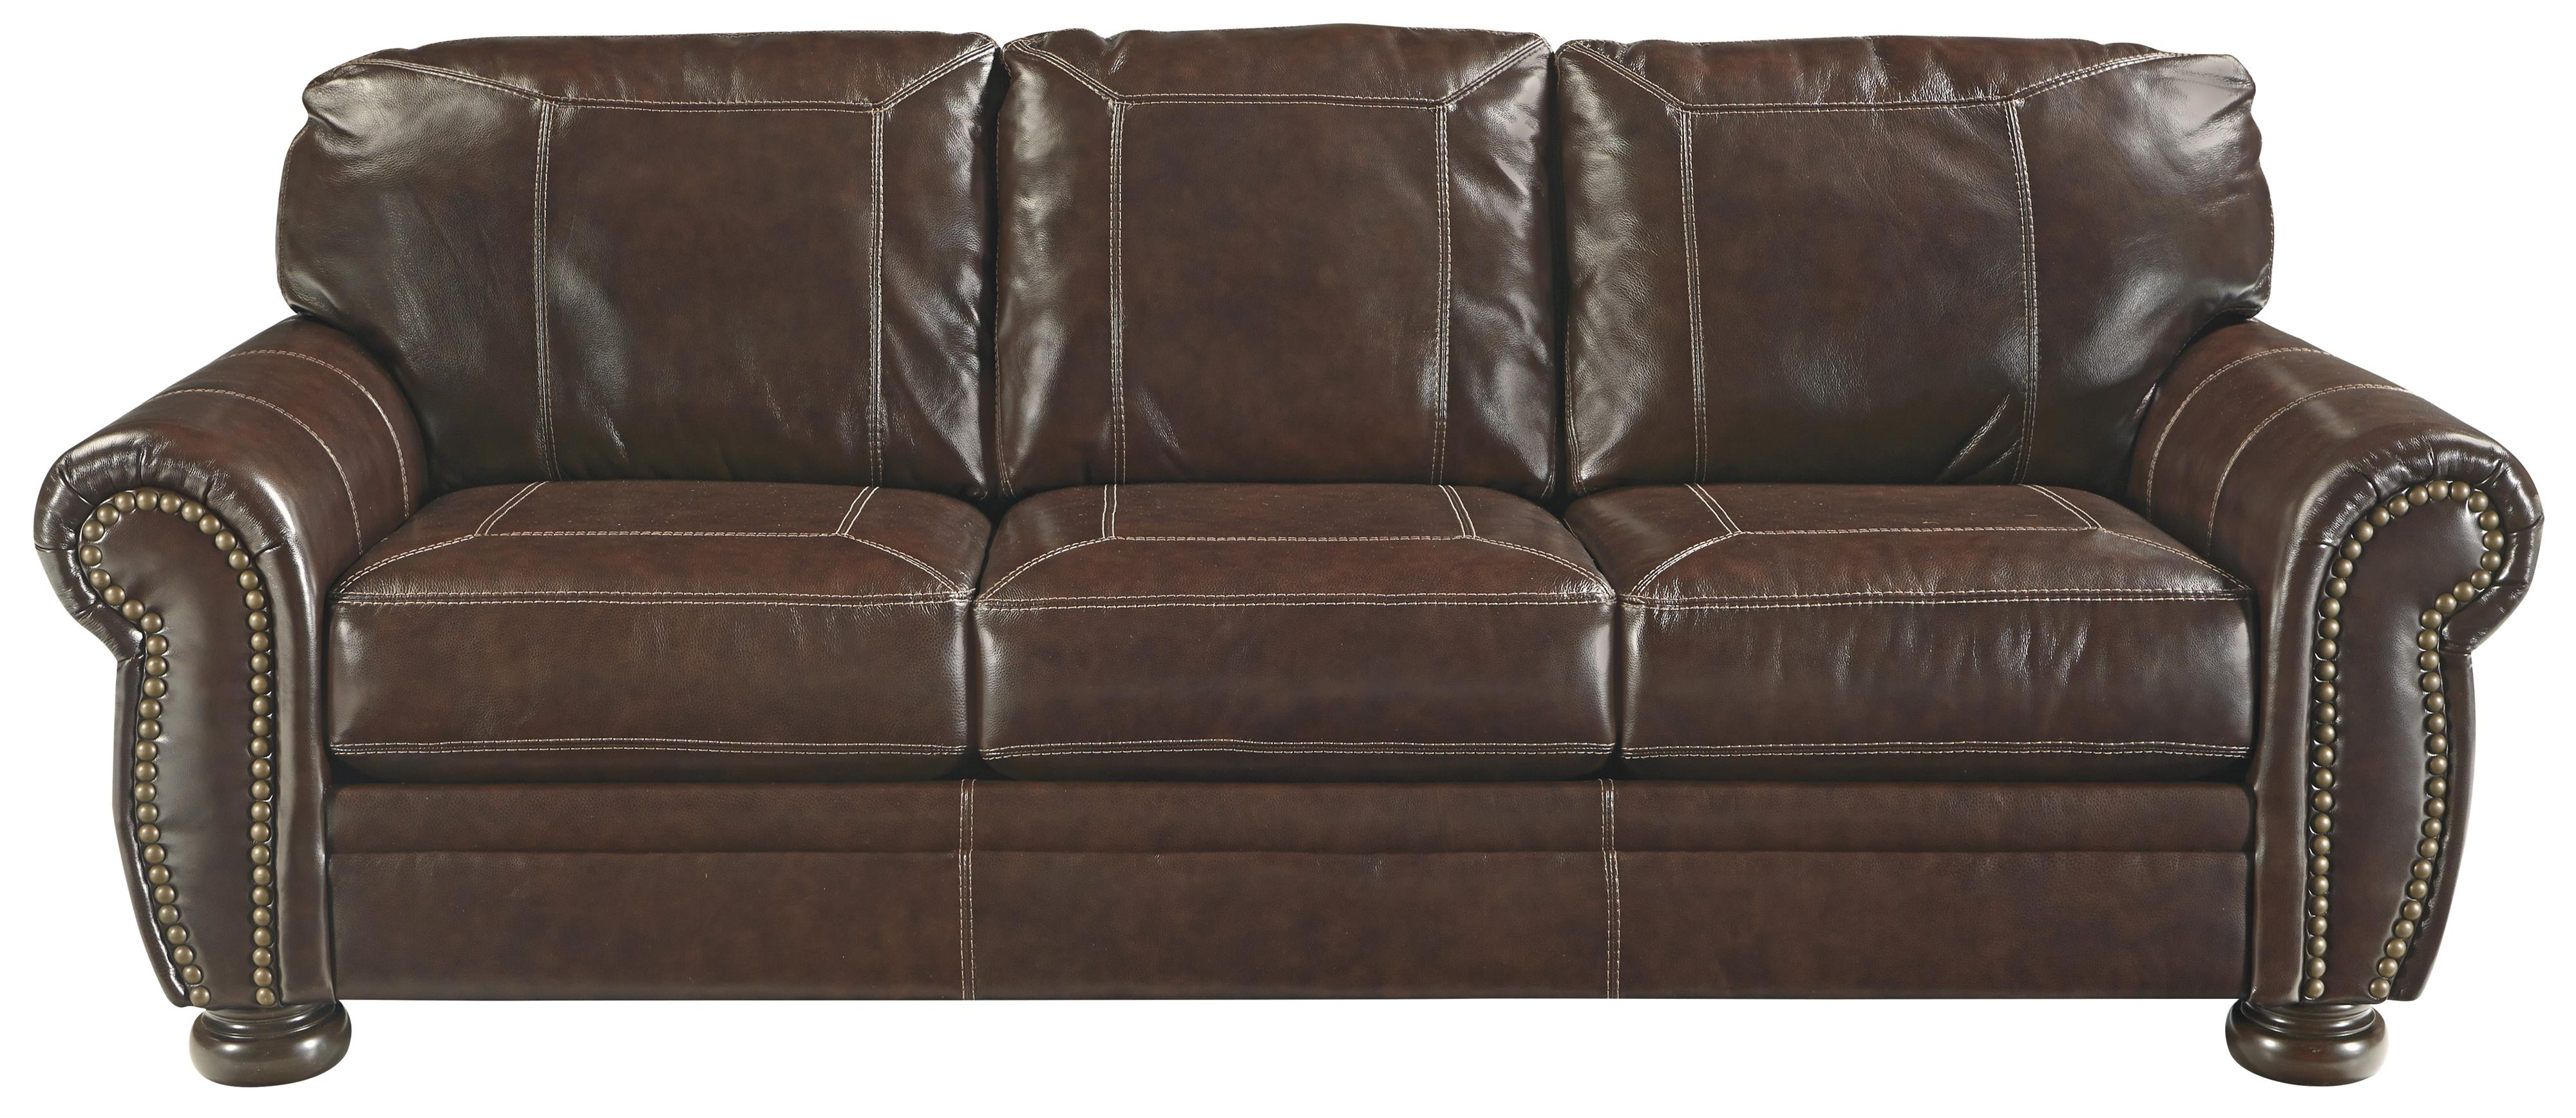 Traditional Leather Match Sofa with Rolled Arms Nailhead  : products2Fsignaturedesignbyashley2Fcolor2Fbanner20 2011955893445040438 b1 from www.wolffurniture.com size 4000 x 1736 jpeg 700kB